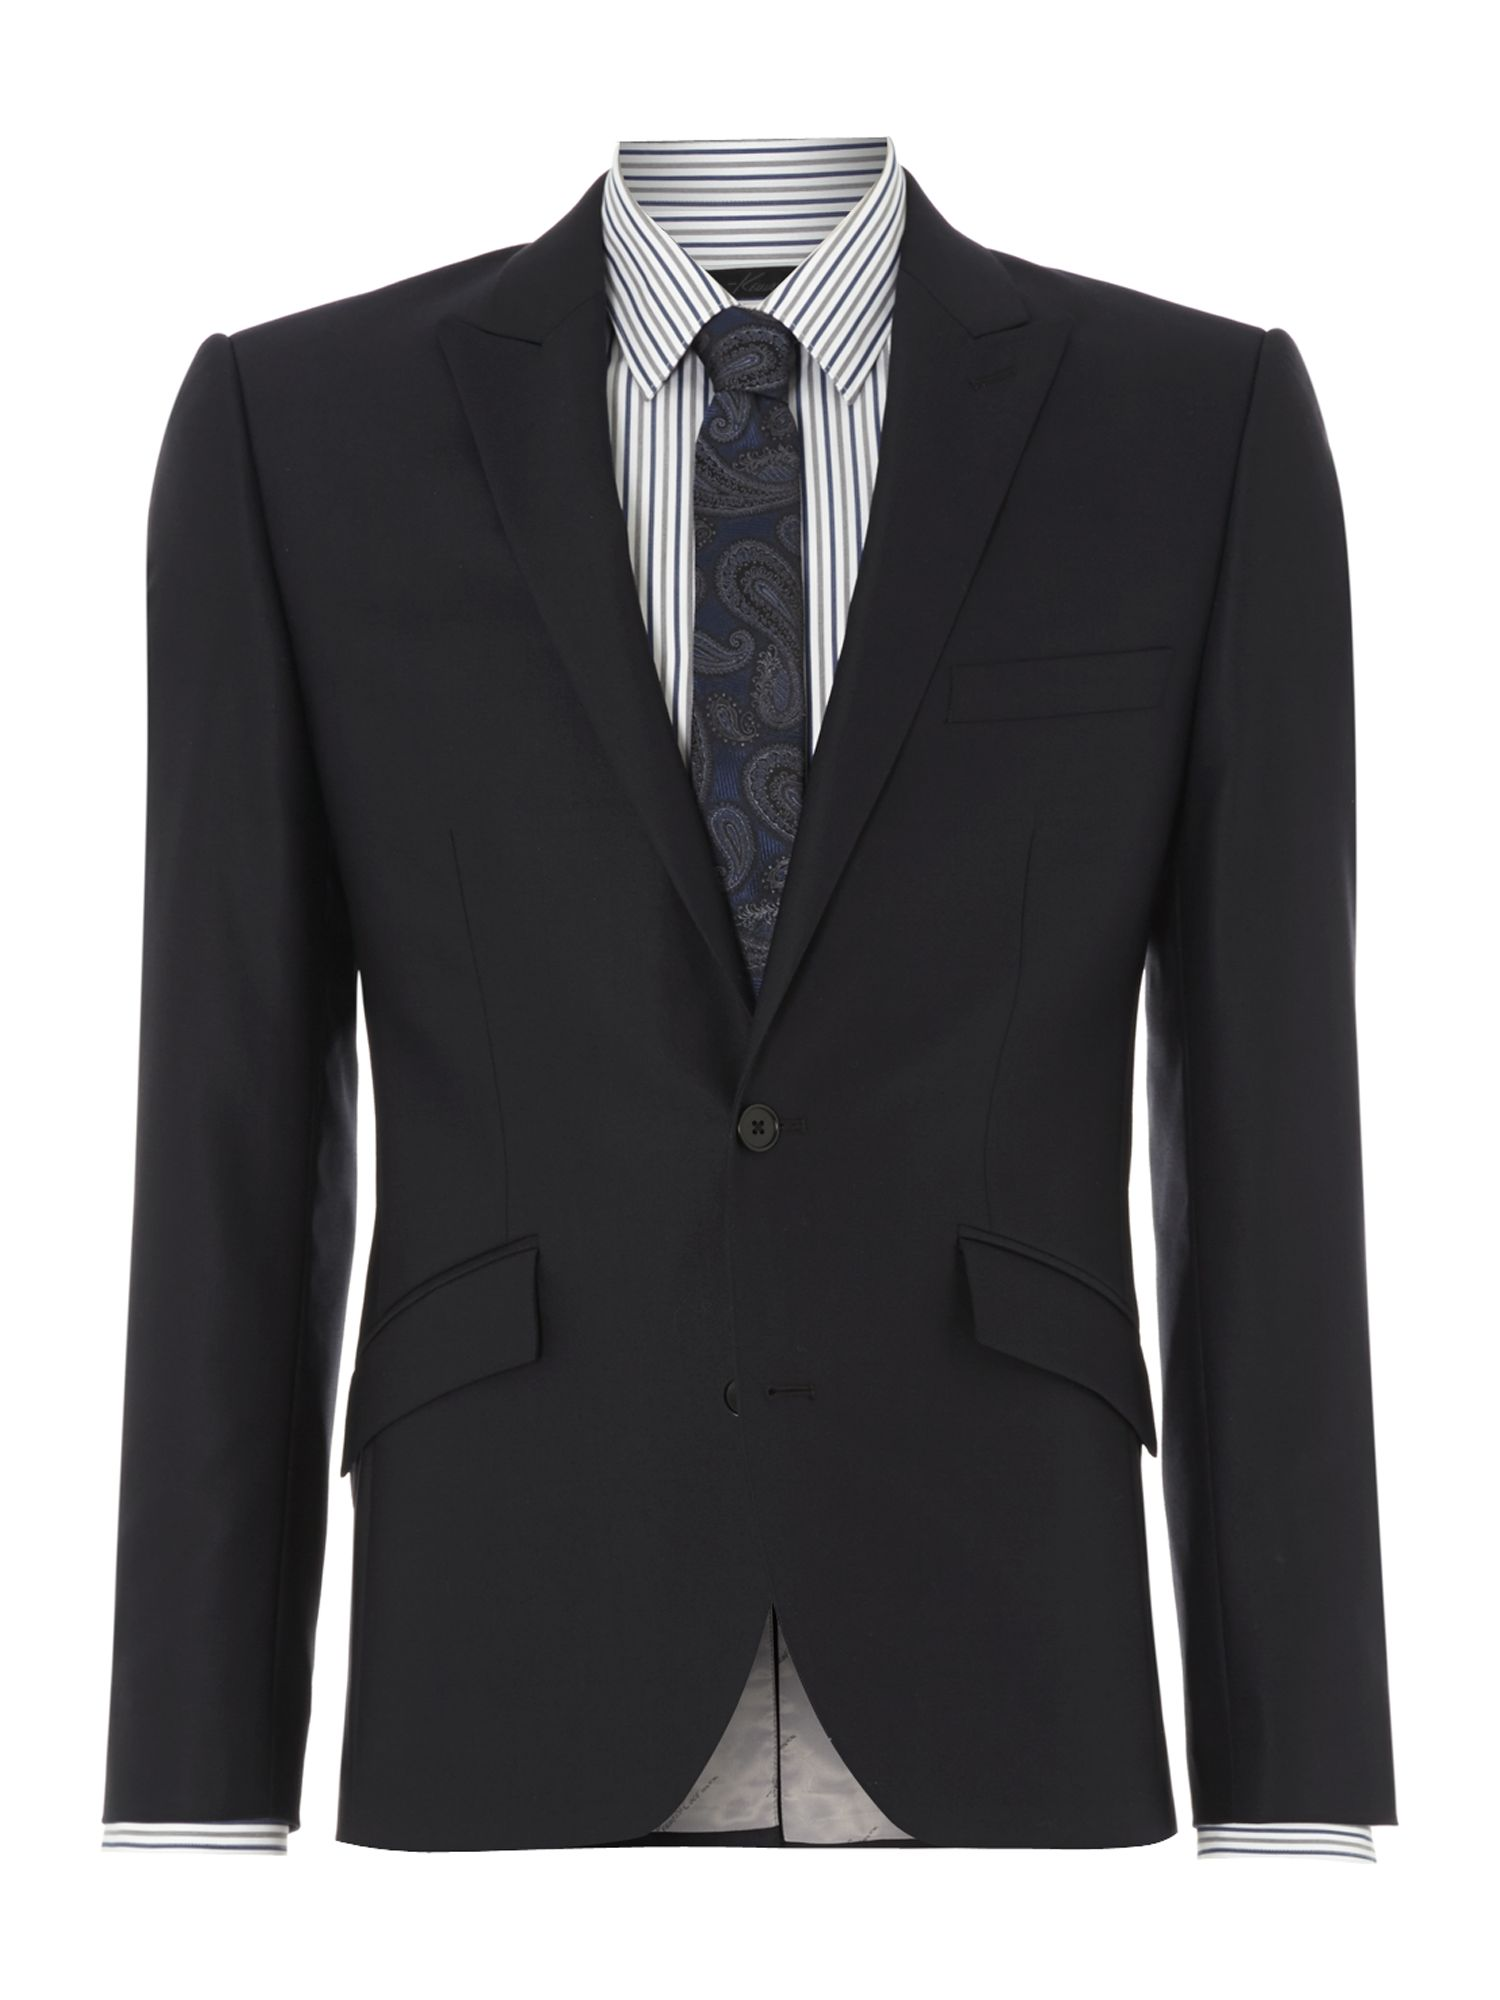 Watts Stretch Slim Fit Twill Peak Suit Jacket